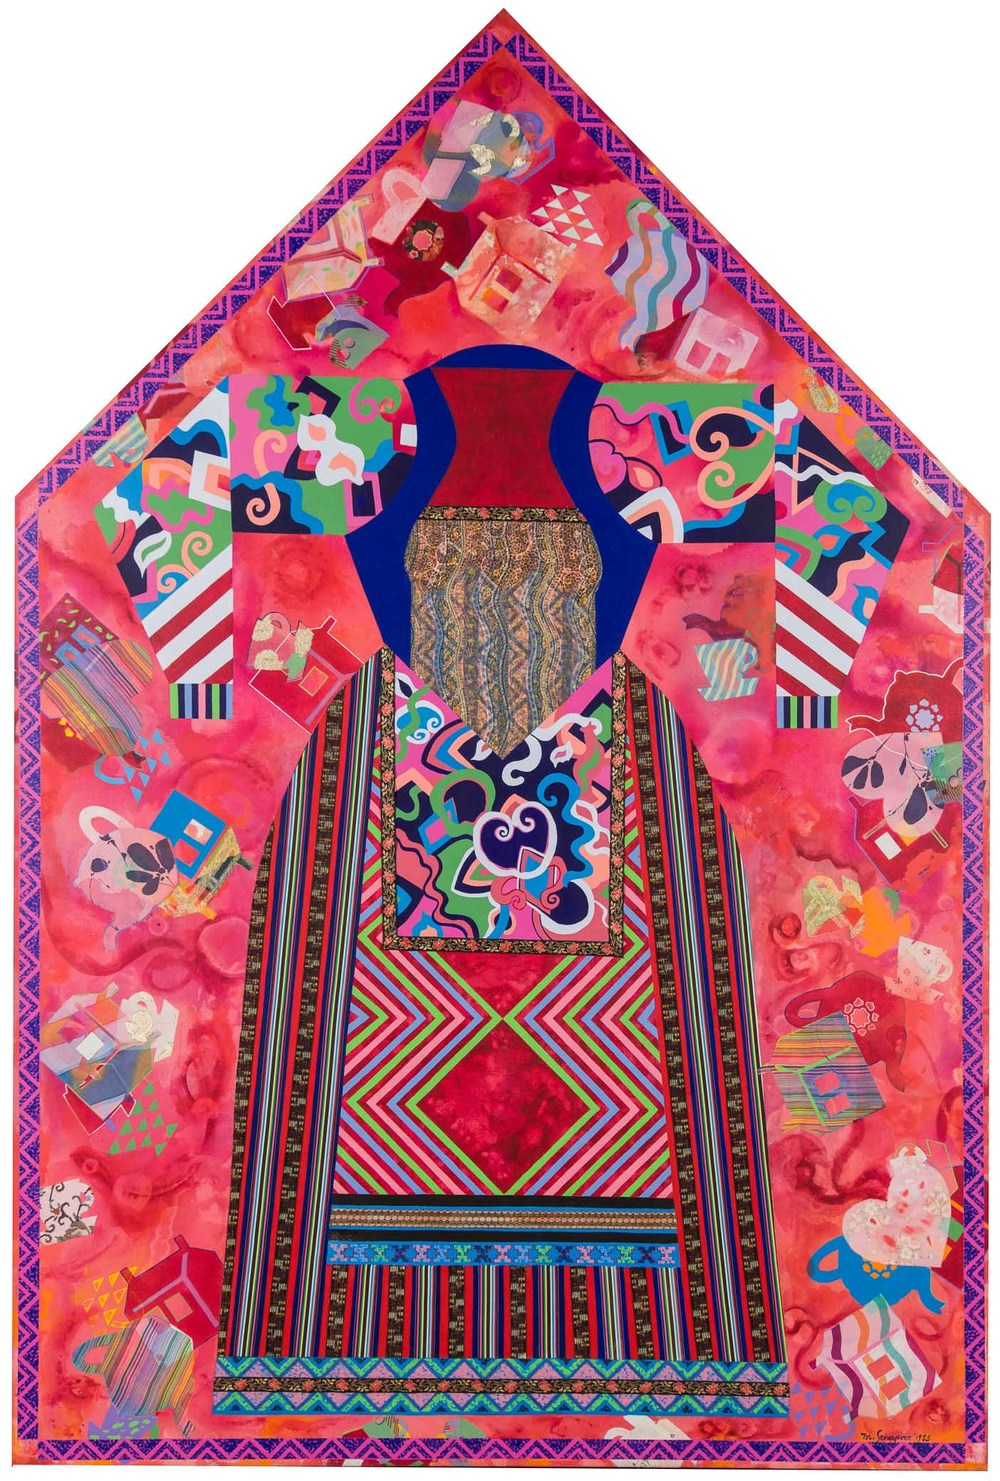 Miriam Schapiro, The Poet, 1983, Acrylic and fabric collage on canvas, Purchased through donations by Mr. and Mrs. Rhett Barker; Sue Bentley; Mr. and Mrs. Wm. Ellsworth, Jr.; Mr. and Mrs. Tip Fowler; Dr. Jane Carver Holmes; and Mr. and Mrs. Bob Macey; Dr. and Mrs. Tom McLaughlin; Norma Roth; Dr. and Mrs. David Taxdal; Anne T. Tucker; Mr. and Mrs. Jim Weeks; Barbara Fowler Wilson; Carol and Steven Boyington; Kristen and Dan Gunter; Lois Harrison; Lisa and Robert Rath; Terri and Joe D'Orsaneo; Dr. and Mrs. John Fargher; Bonnie Franks; Wendy Hall; Alfred and Lucille Pfund; Dr. and Mrs. James Rogers; Catherine and Daniel Stetson; Diane Van Dusen; the Docent Acquisition Fund; the Friends of Polk Museum of Art; and the Kent Harrison Memorial Acquisition Fund, Polk Museum of Art Permanent Collection 2000.7